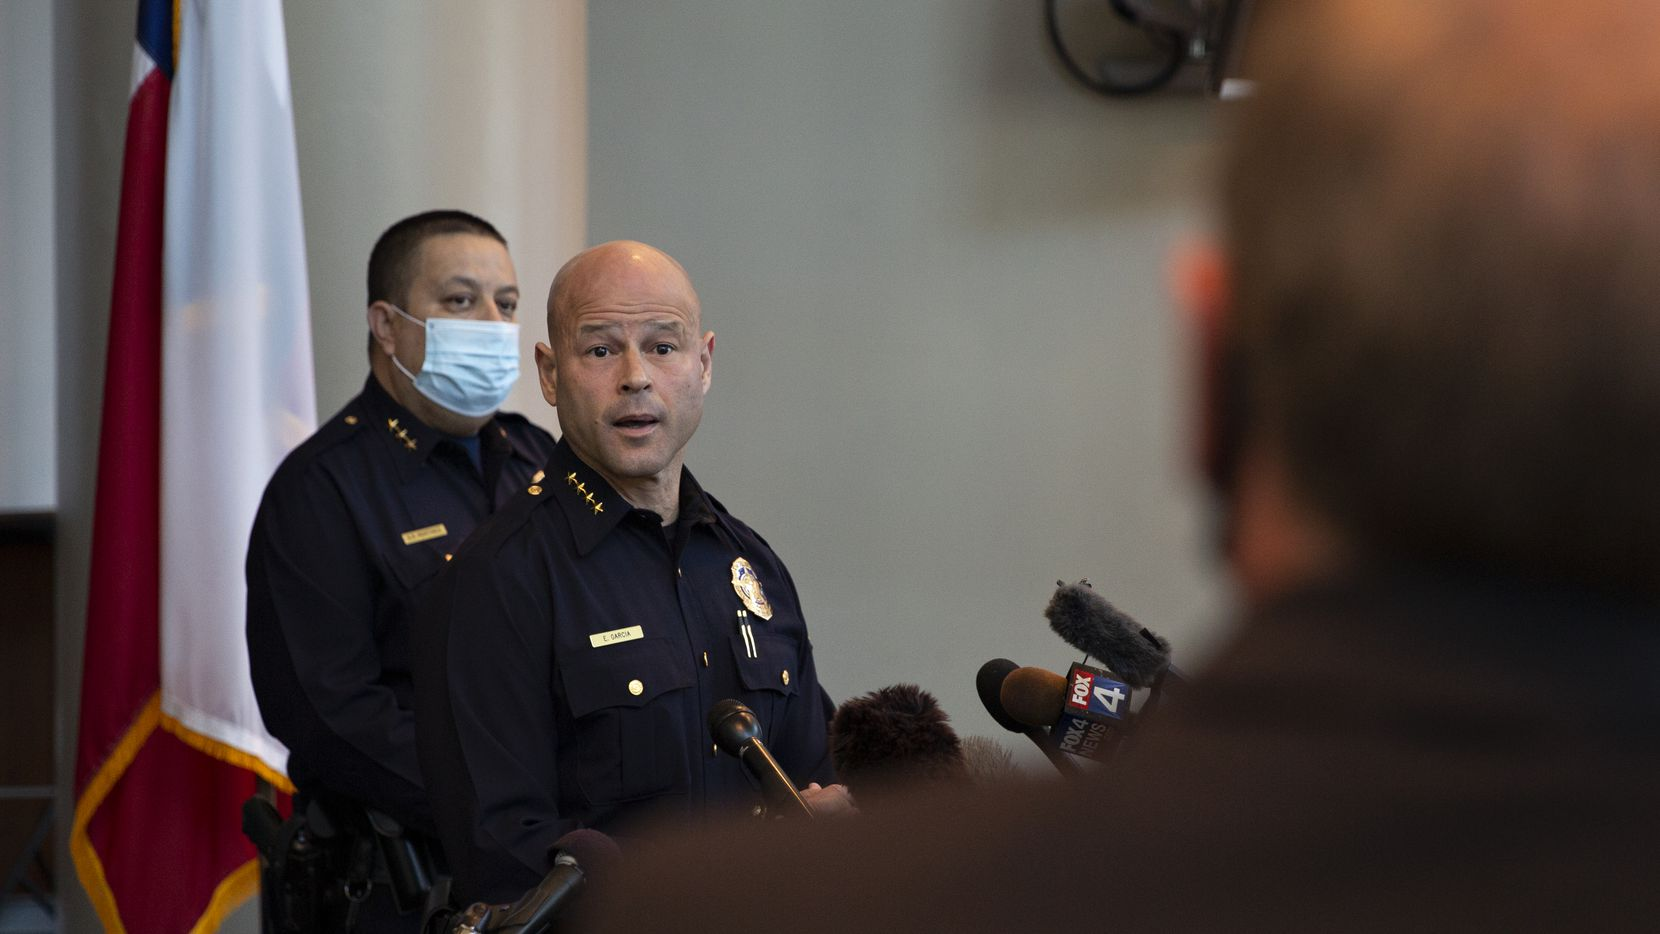 Dallas Police Chief Eddie Garcia speaks at a press conference at the Dallas Police Headquarters on April 8, 2021. (Shelby Tauber/Special Contributor)